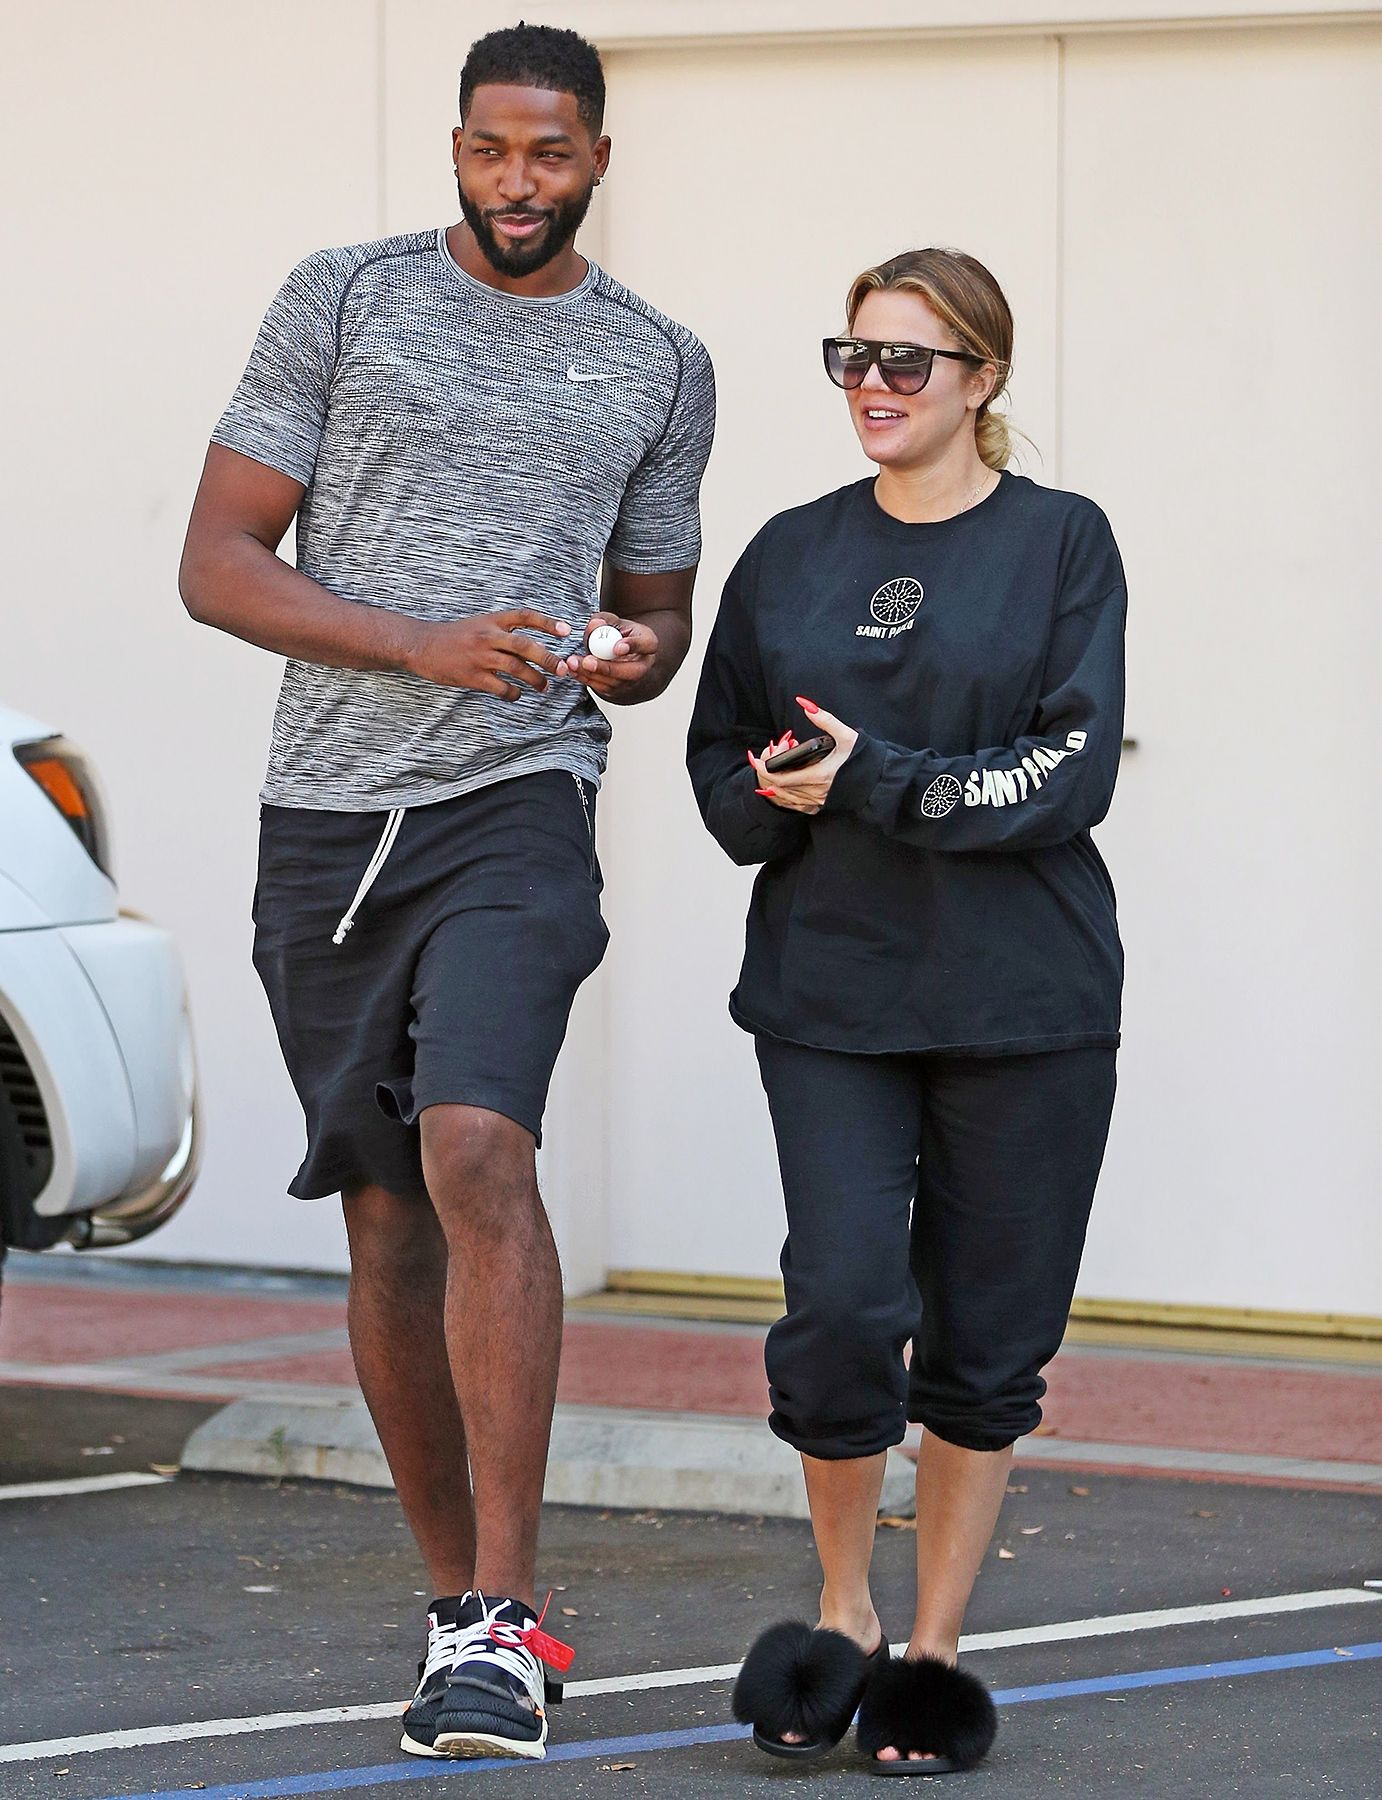 646f0d2b4fb6 Pregnant Khloe Kardashian and Tristan Thompson Are Not Married ...